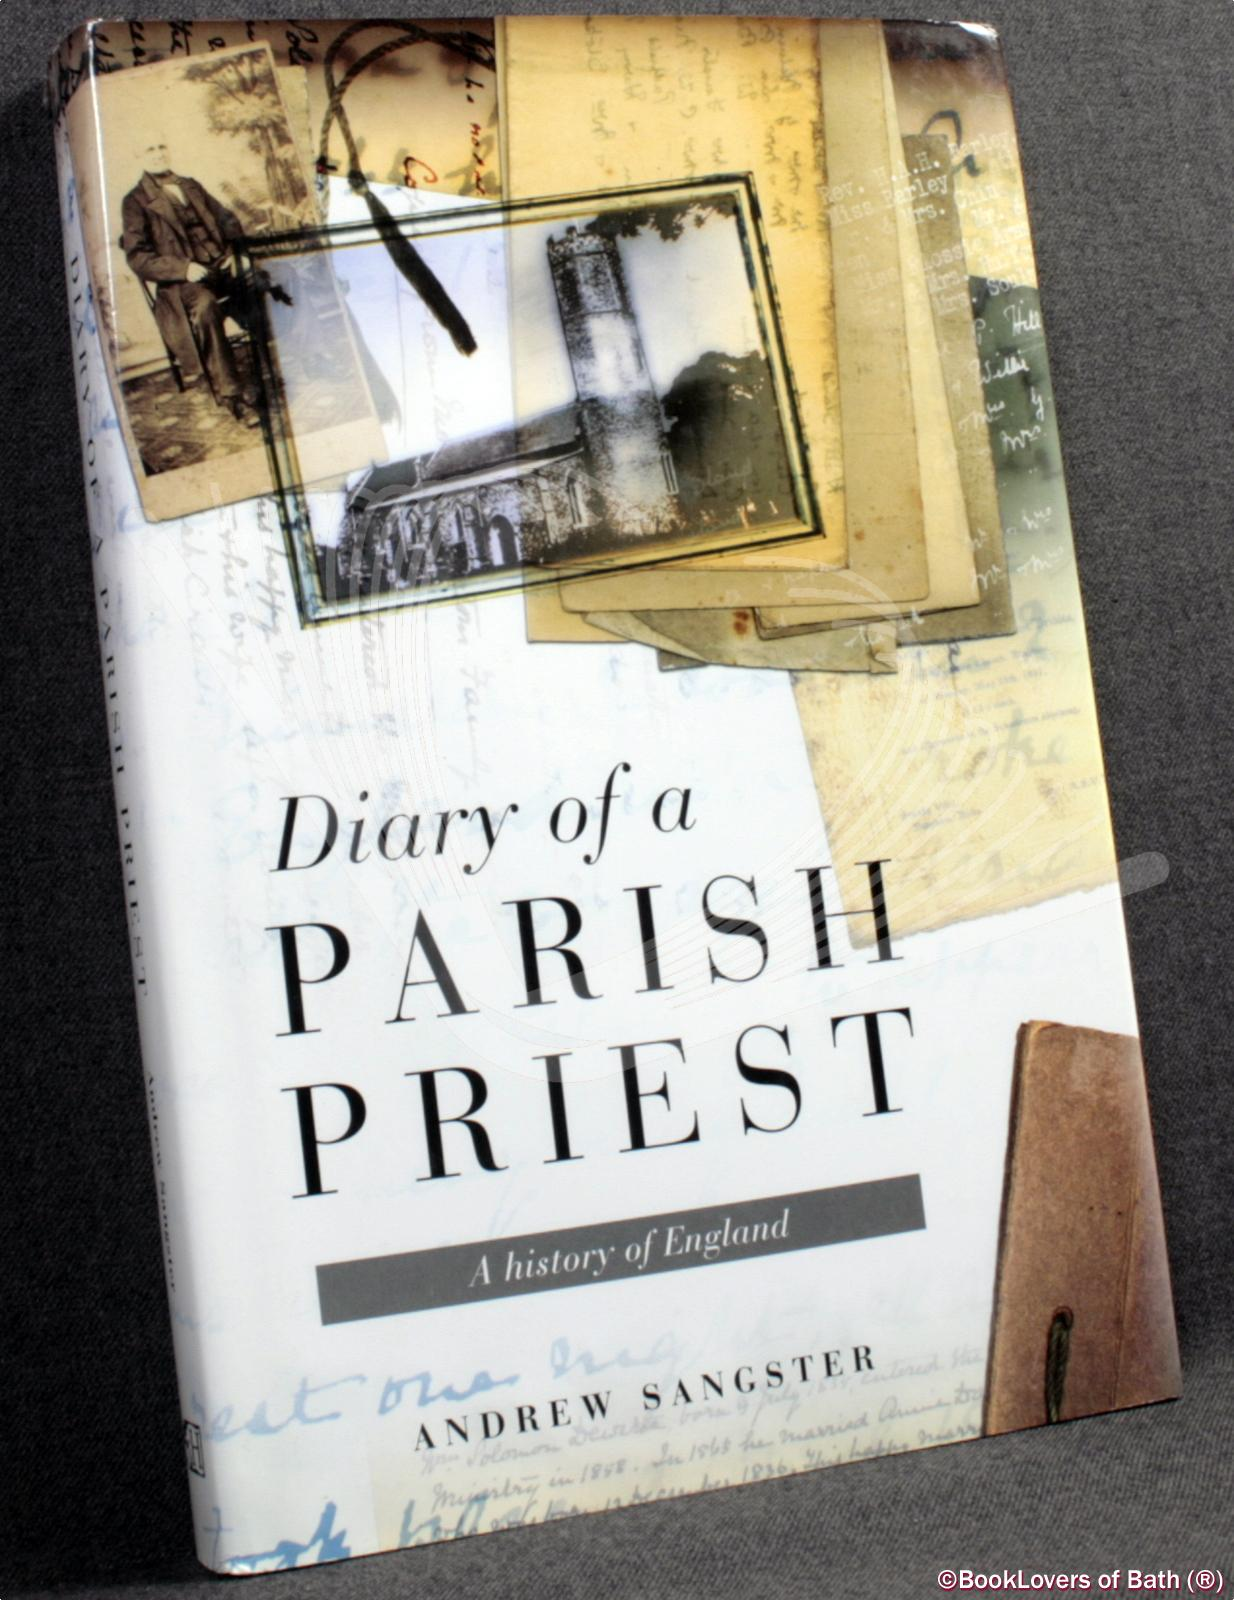 Diary of a Parish Priest: A History of England - Andrew Sangster